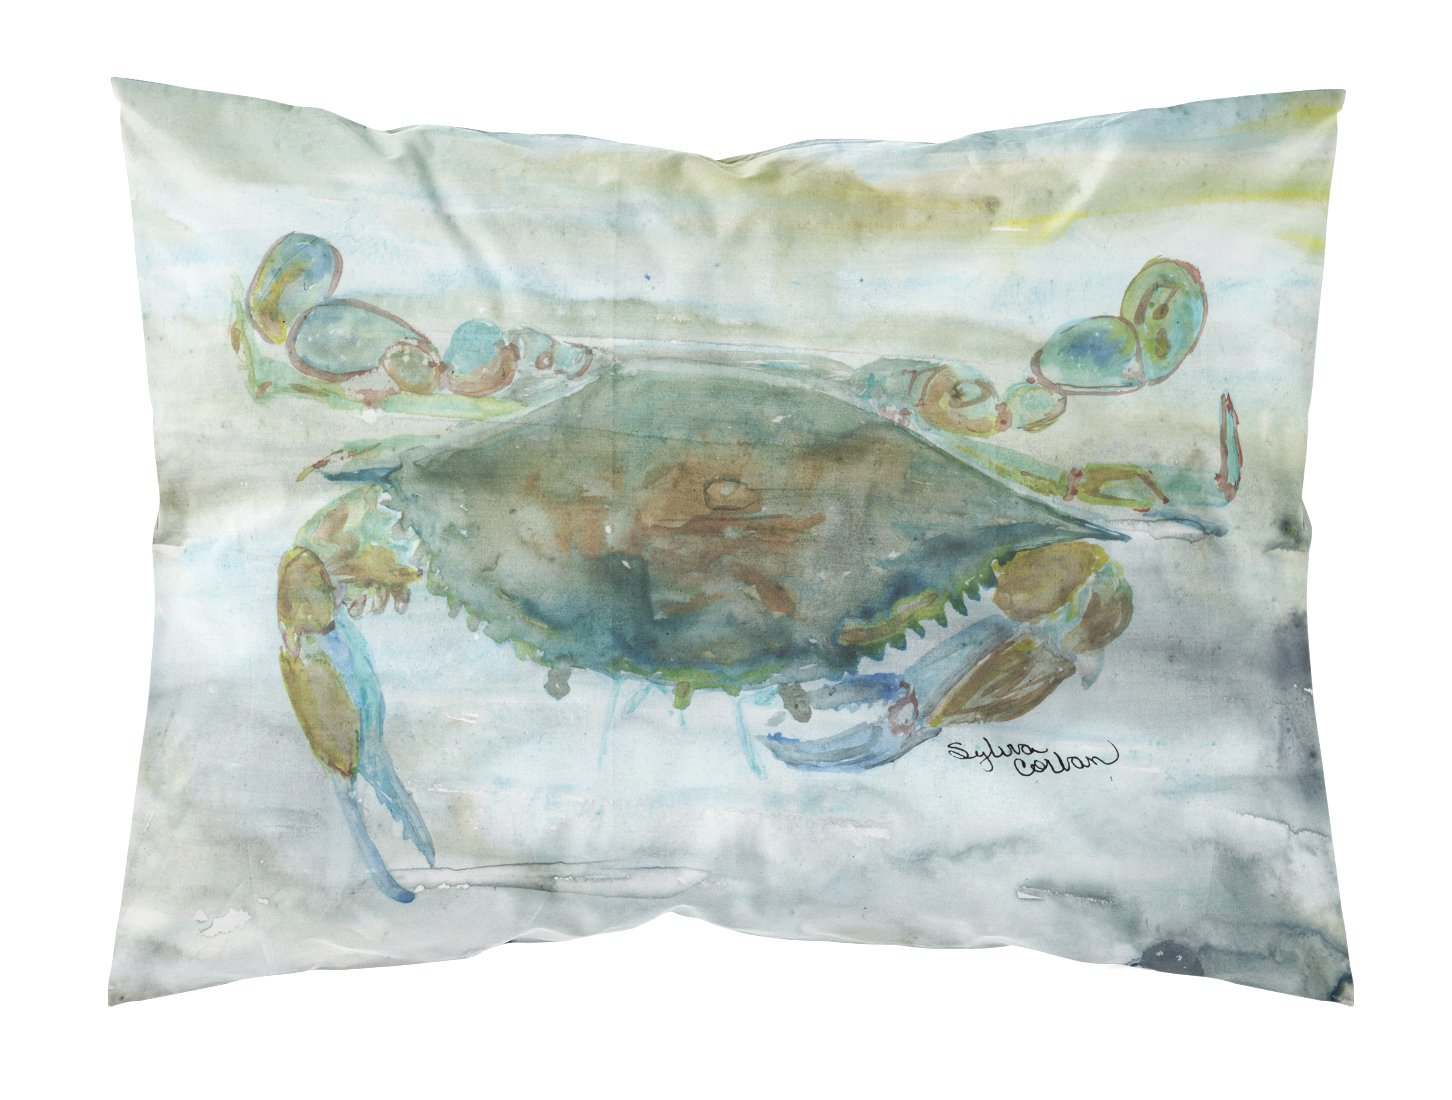 Buy this Crab a leg up Watercolor Fabric Standard Pillowcase SC2002PILLOWCASE